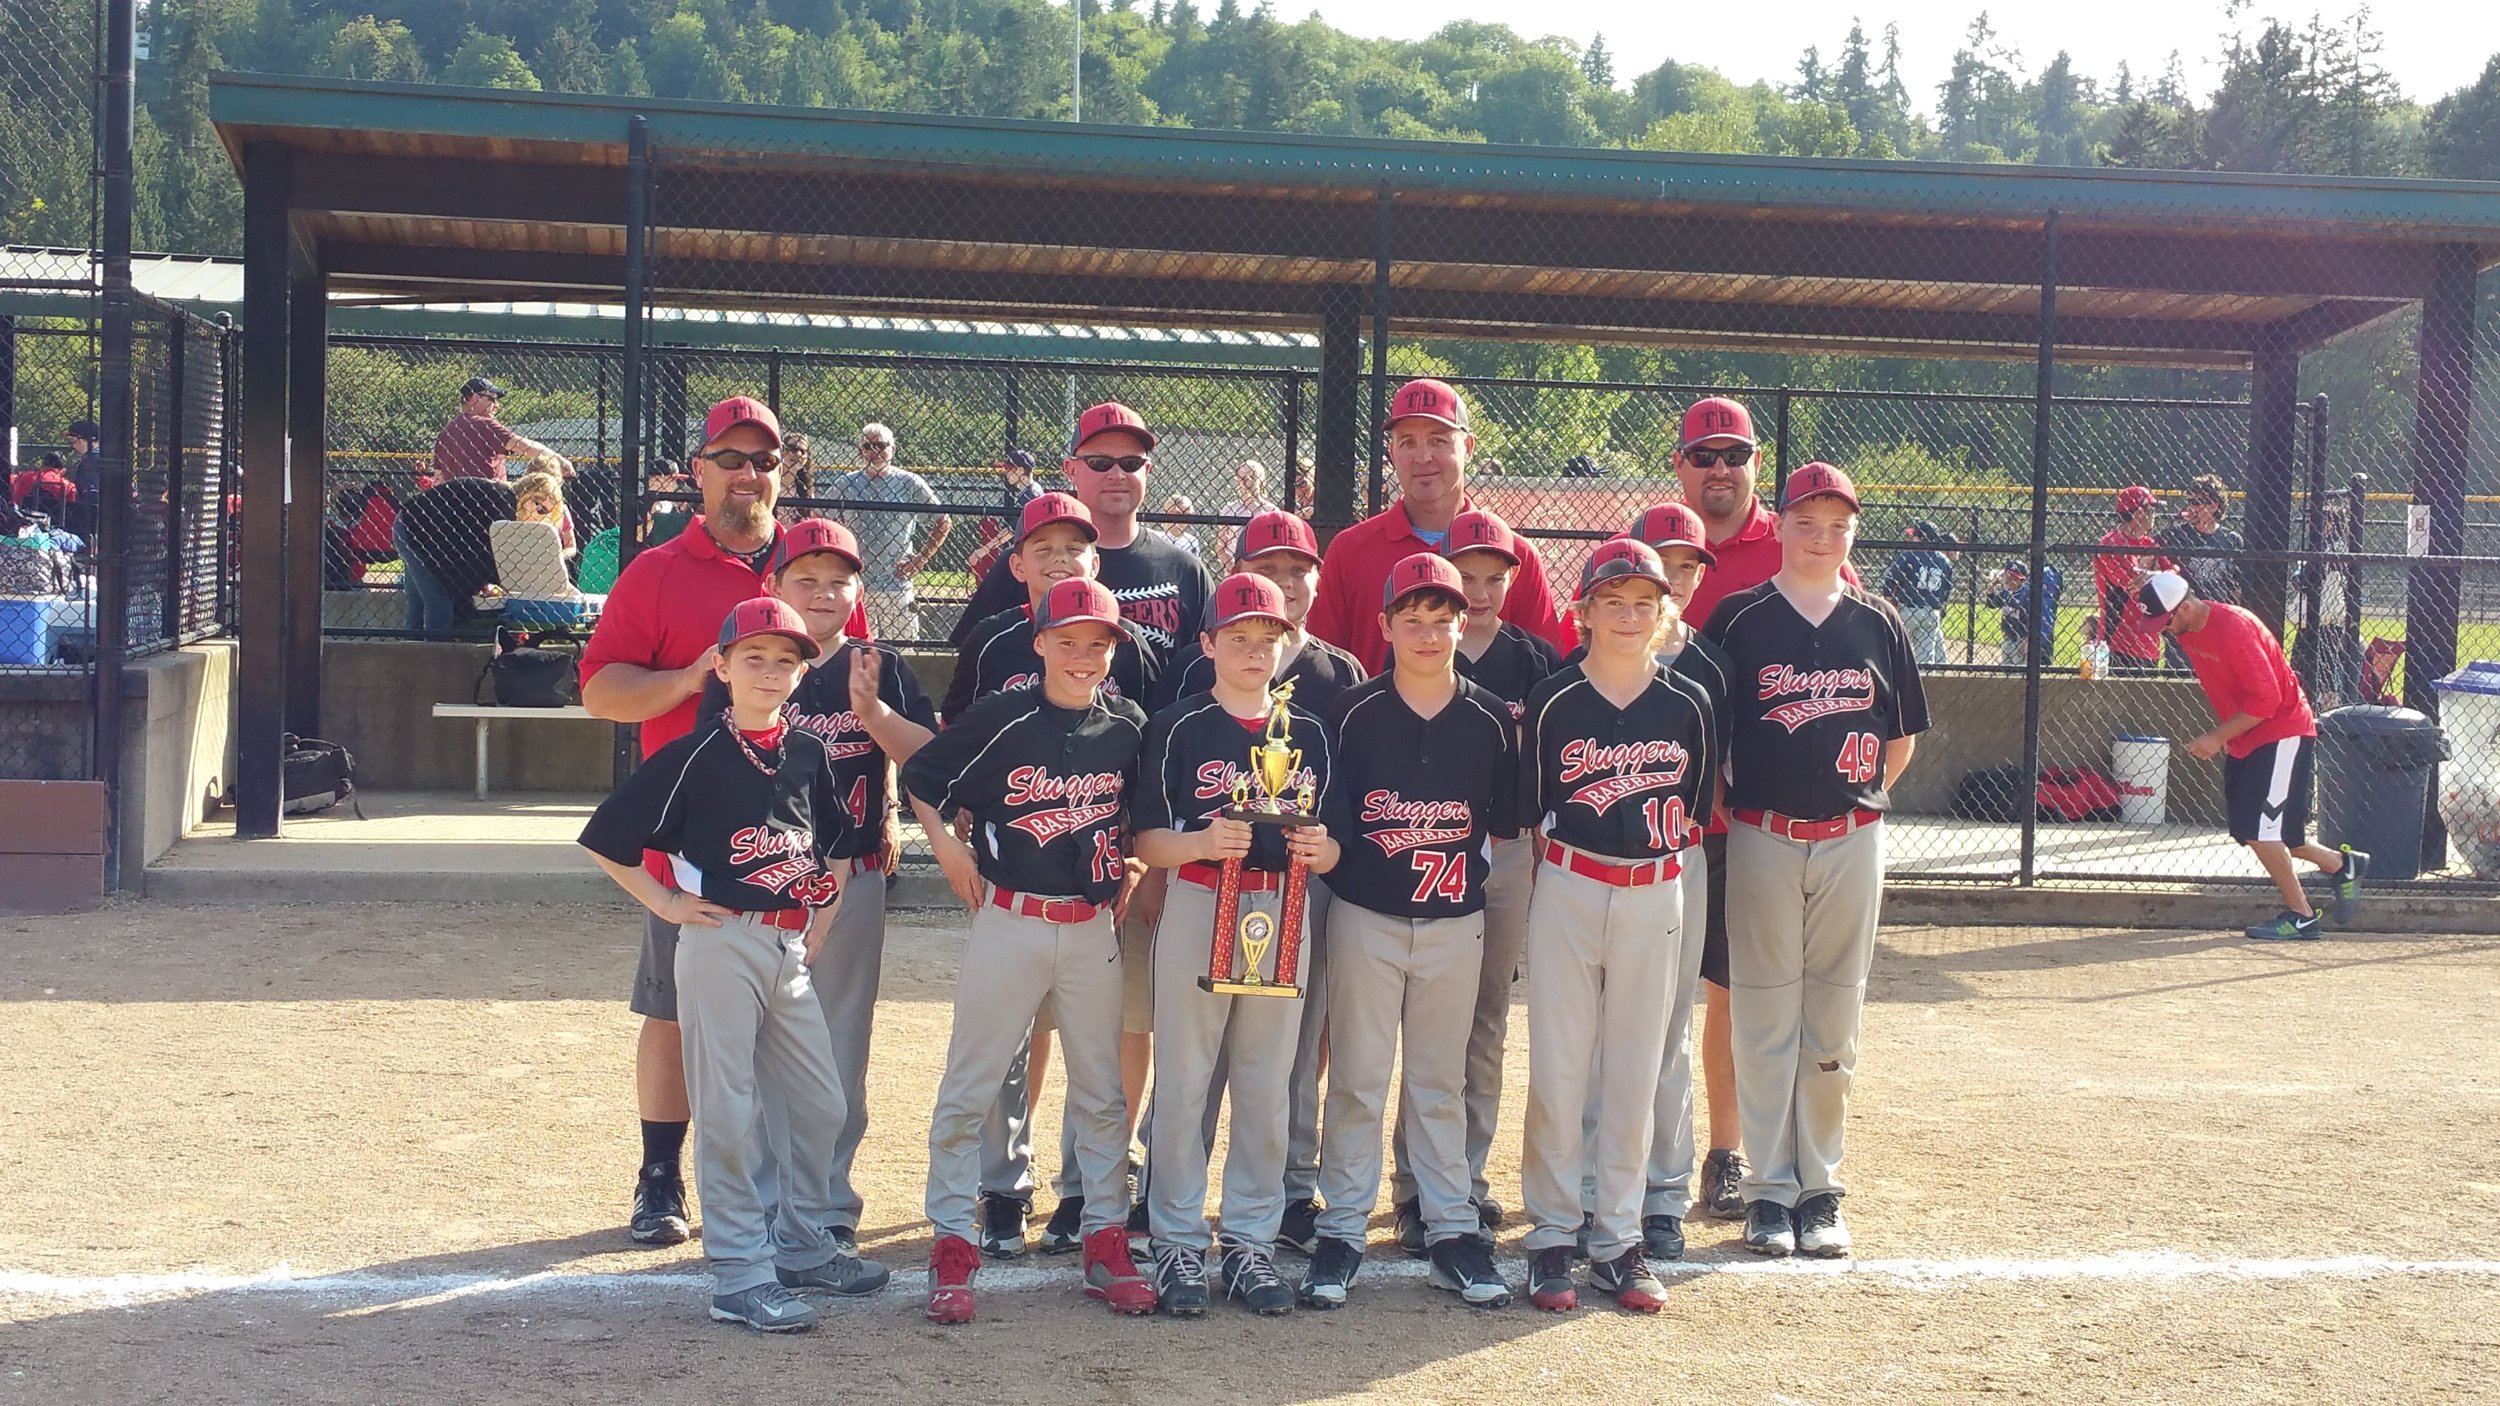 The Dalles Sluggers 2015